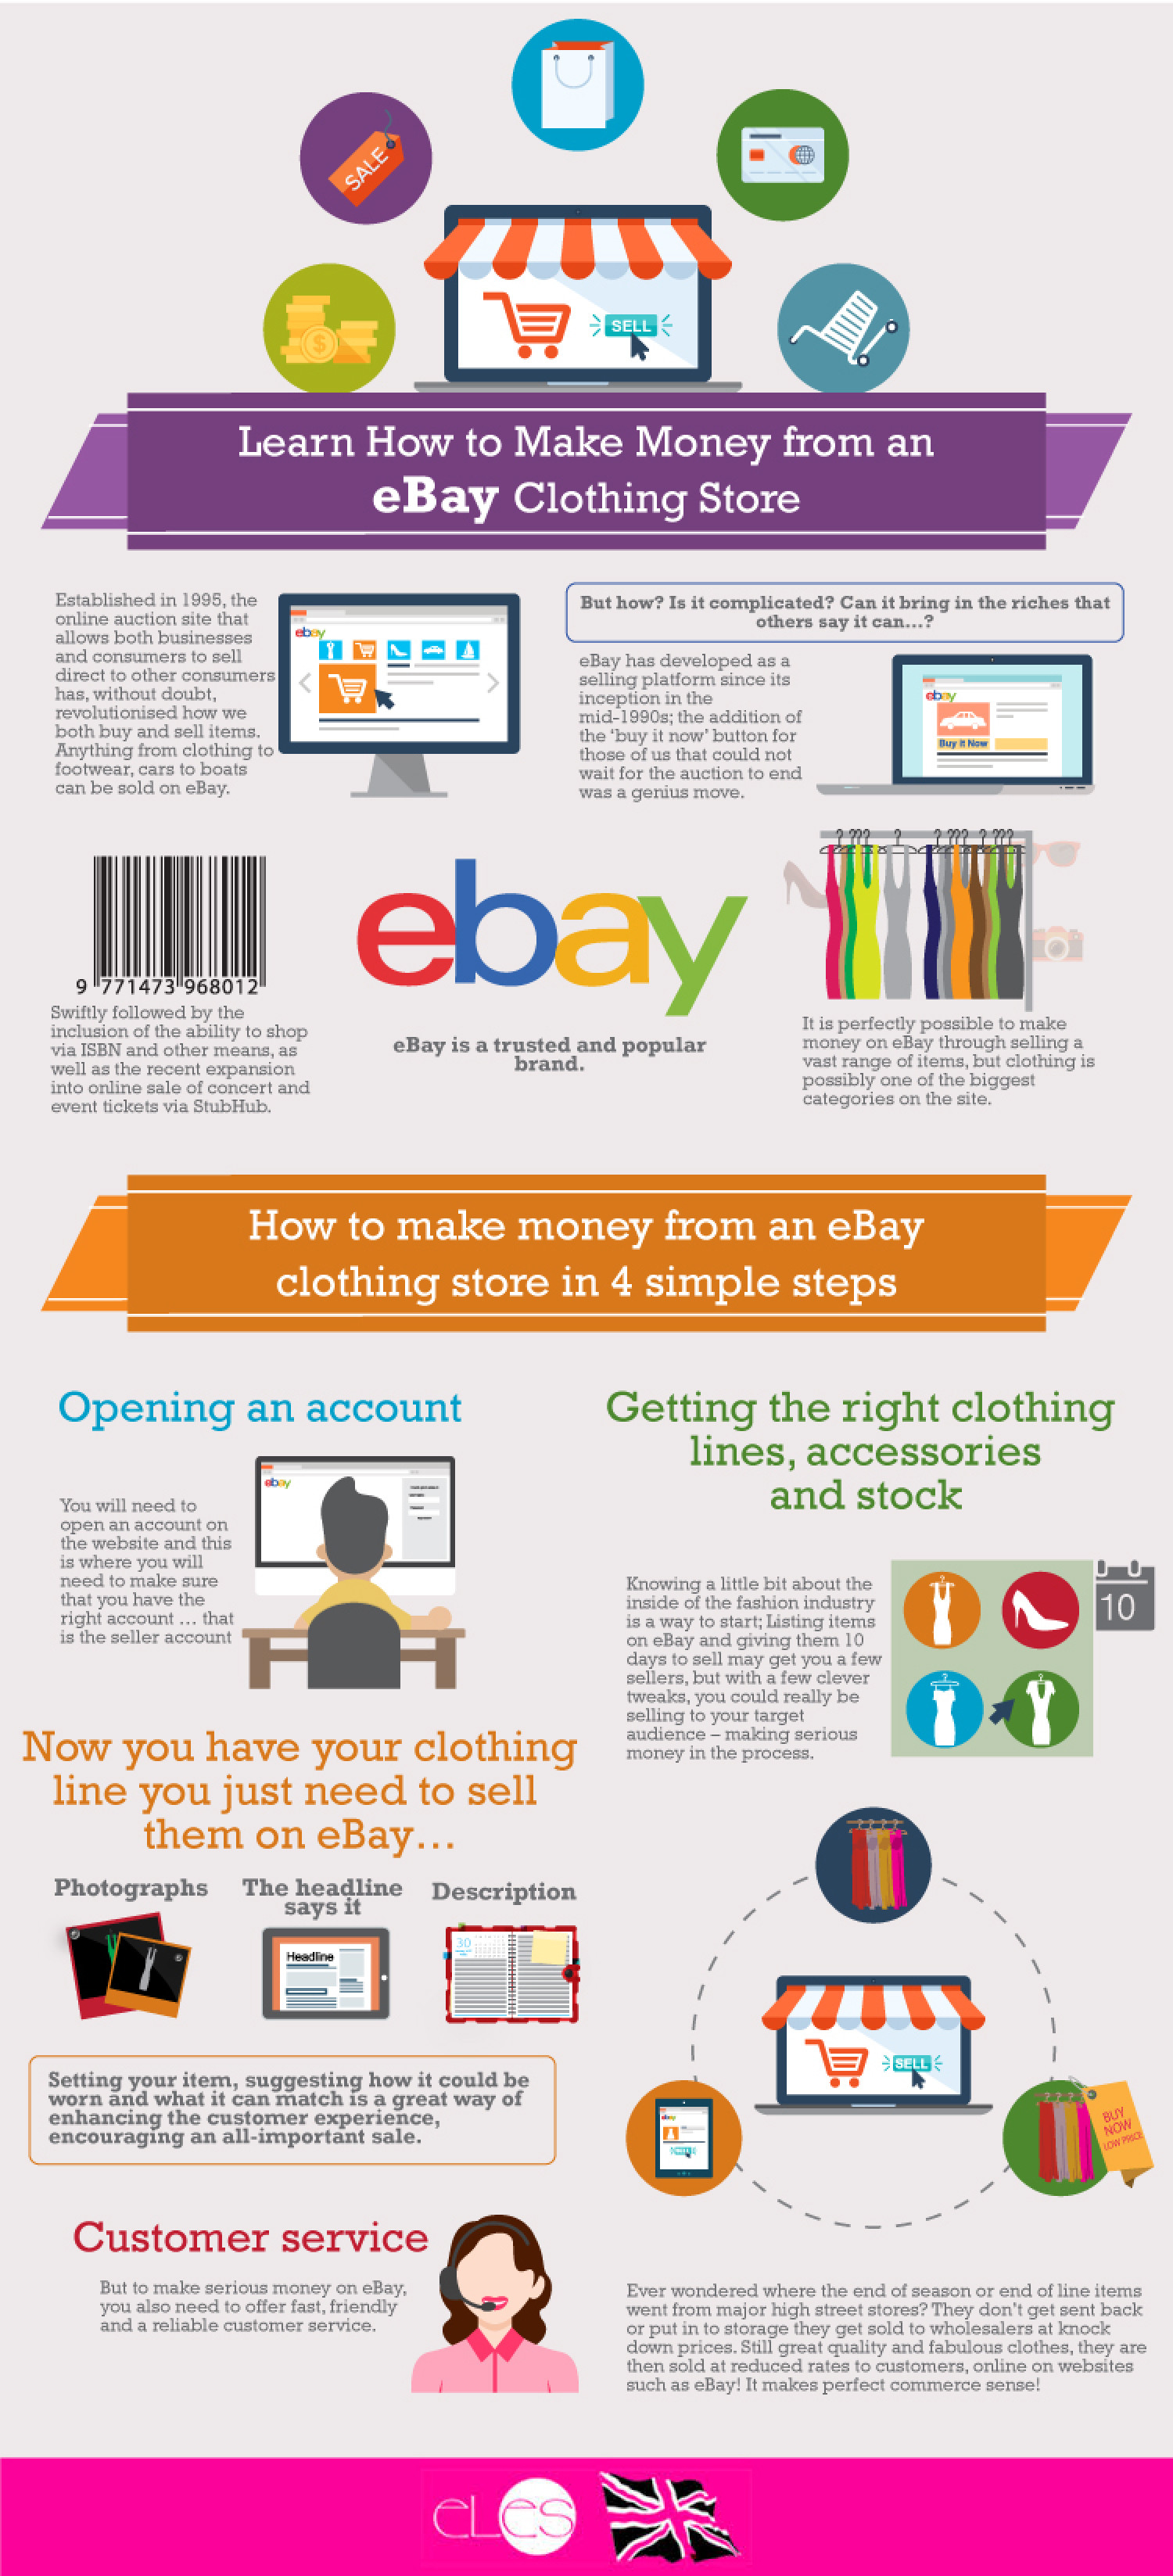 Ebay clothing stores. Cheap online clothing stores